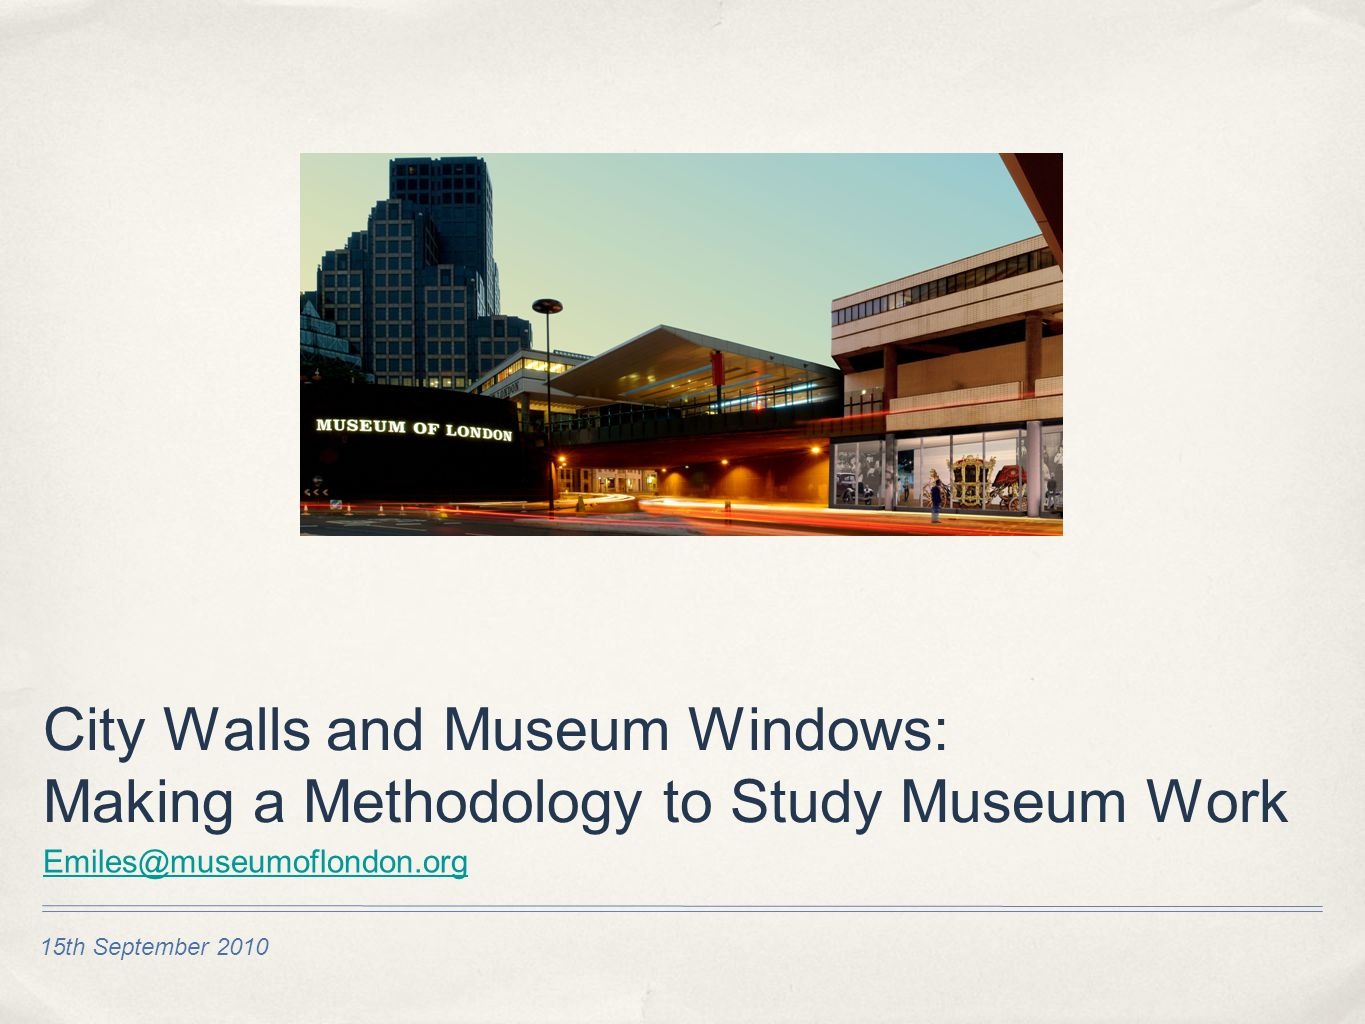 15th September 2010 City Walls and Museum Windows: Making a Methodology to Study Museum Work